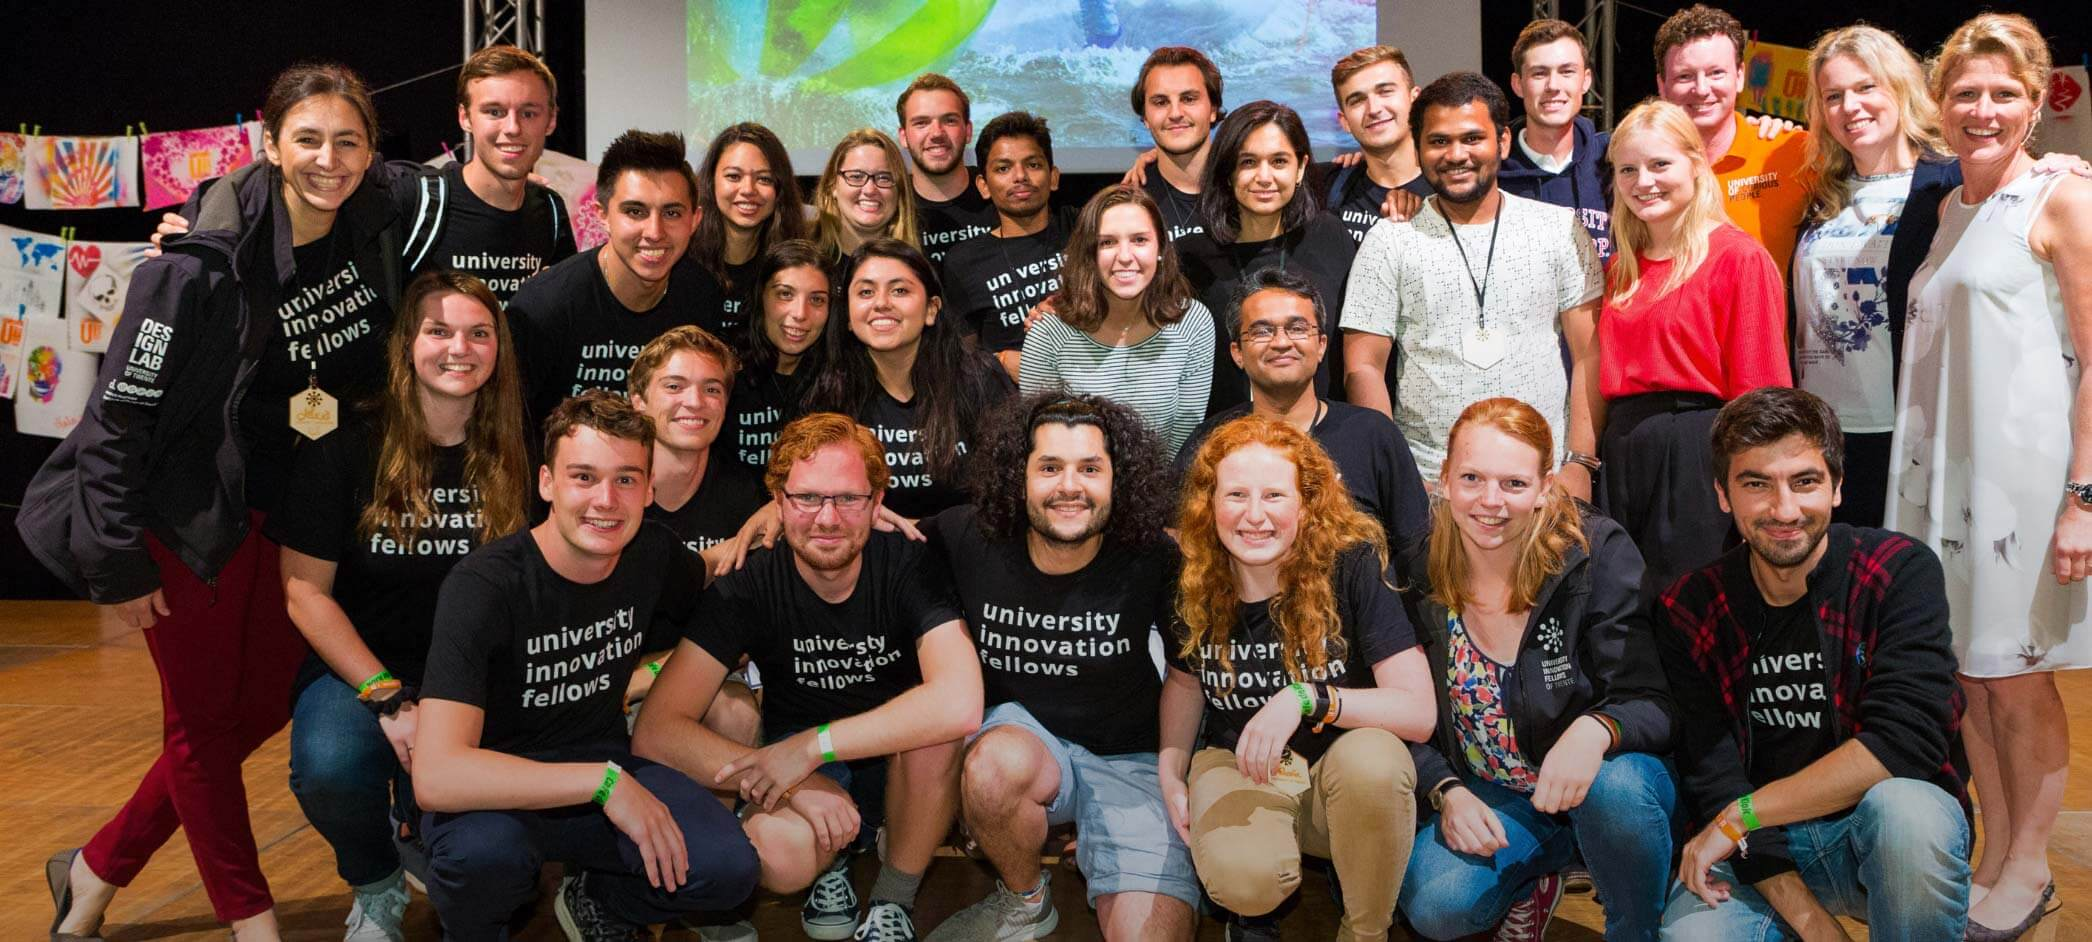 Join the Leaders of Innovation and Impact Summer School!